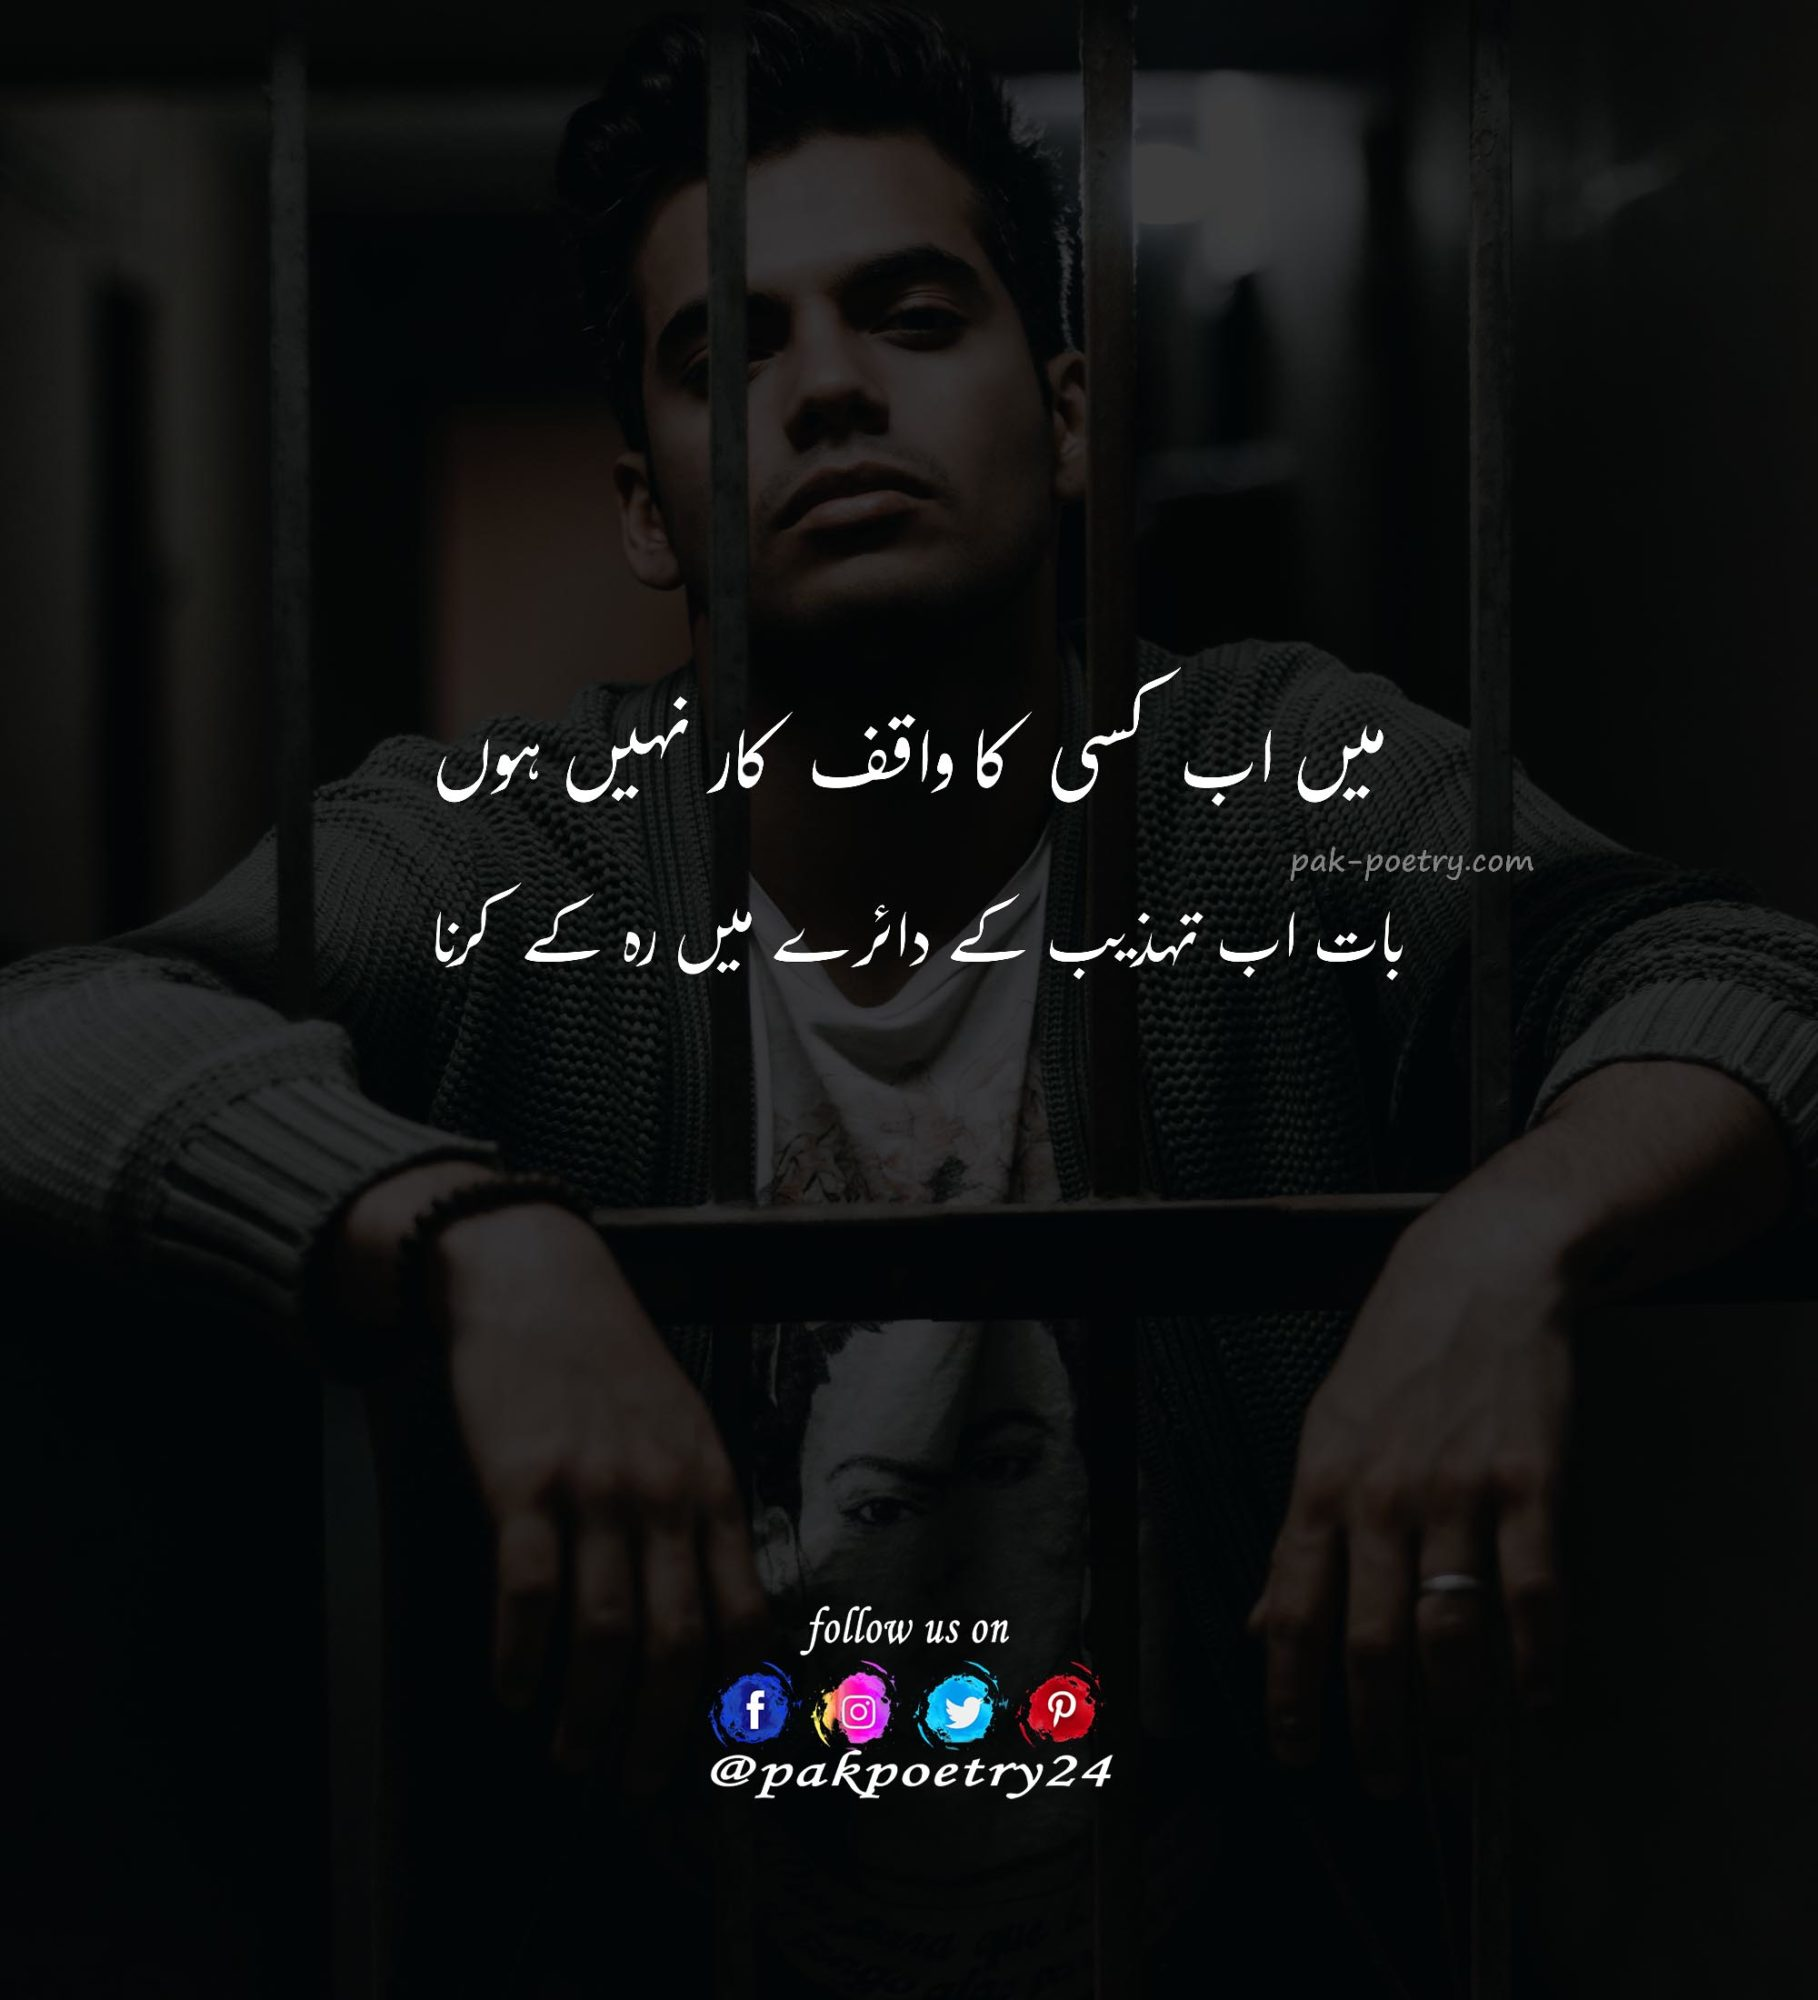 attitude poetry, attitude poetry in urdu, attitude urdu poetry, attitude poetry urdu, poetry, attitude urdu shayari, poetry in urdu attitude, attitude new poetry in urdu, new attitude poetry, punjabi attitude poetry, poetry attitude, urdu poetry attitude, poetry urdu attitude, urdu shayari attitude, poetry attitude urdu, atitude poetry, urdu poetry on attitude,